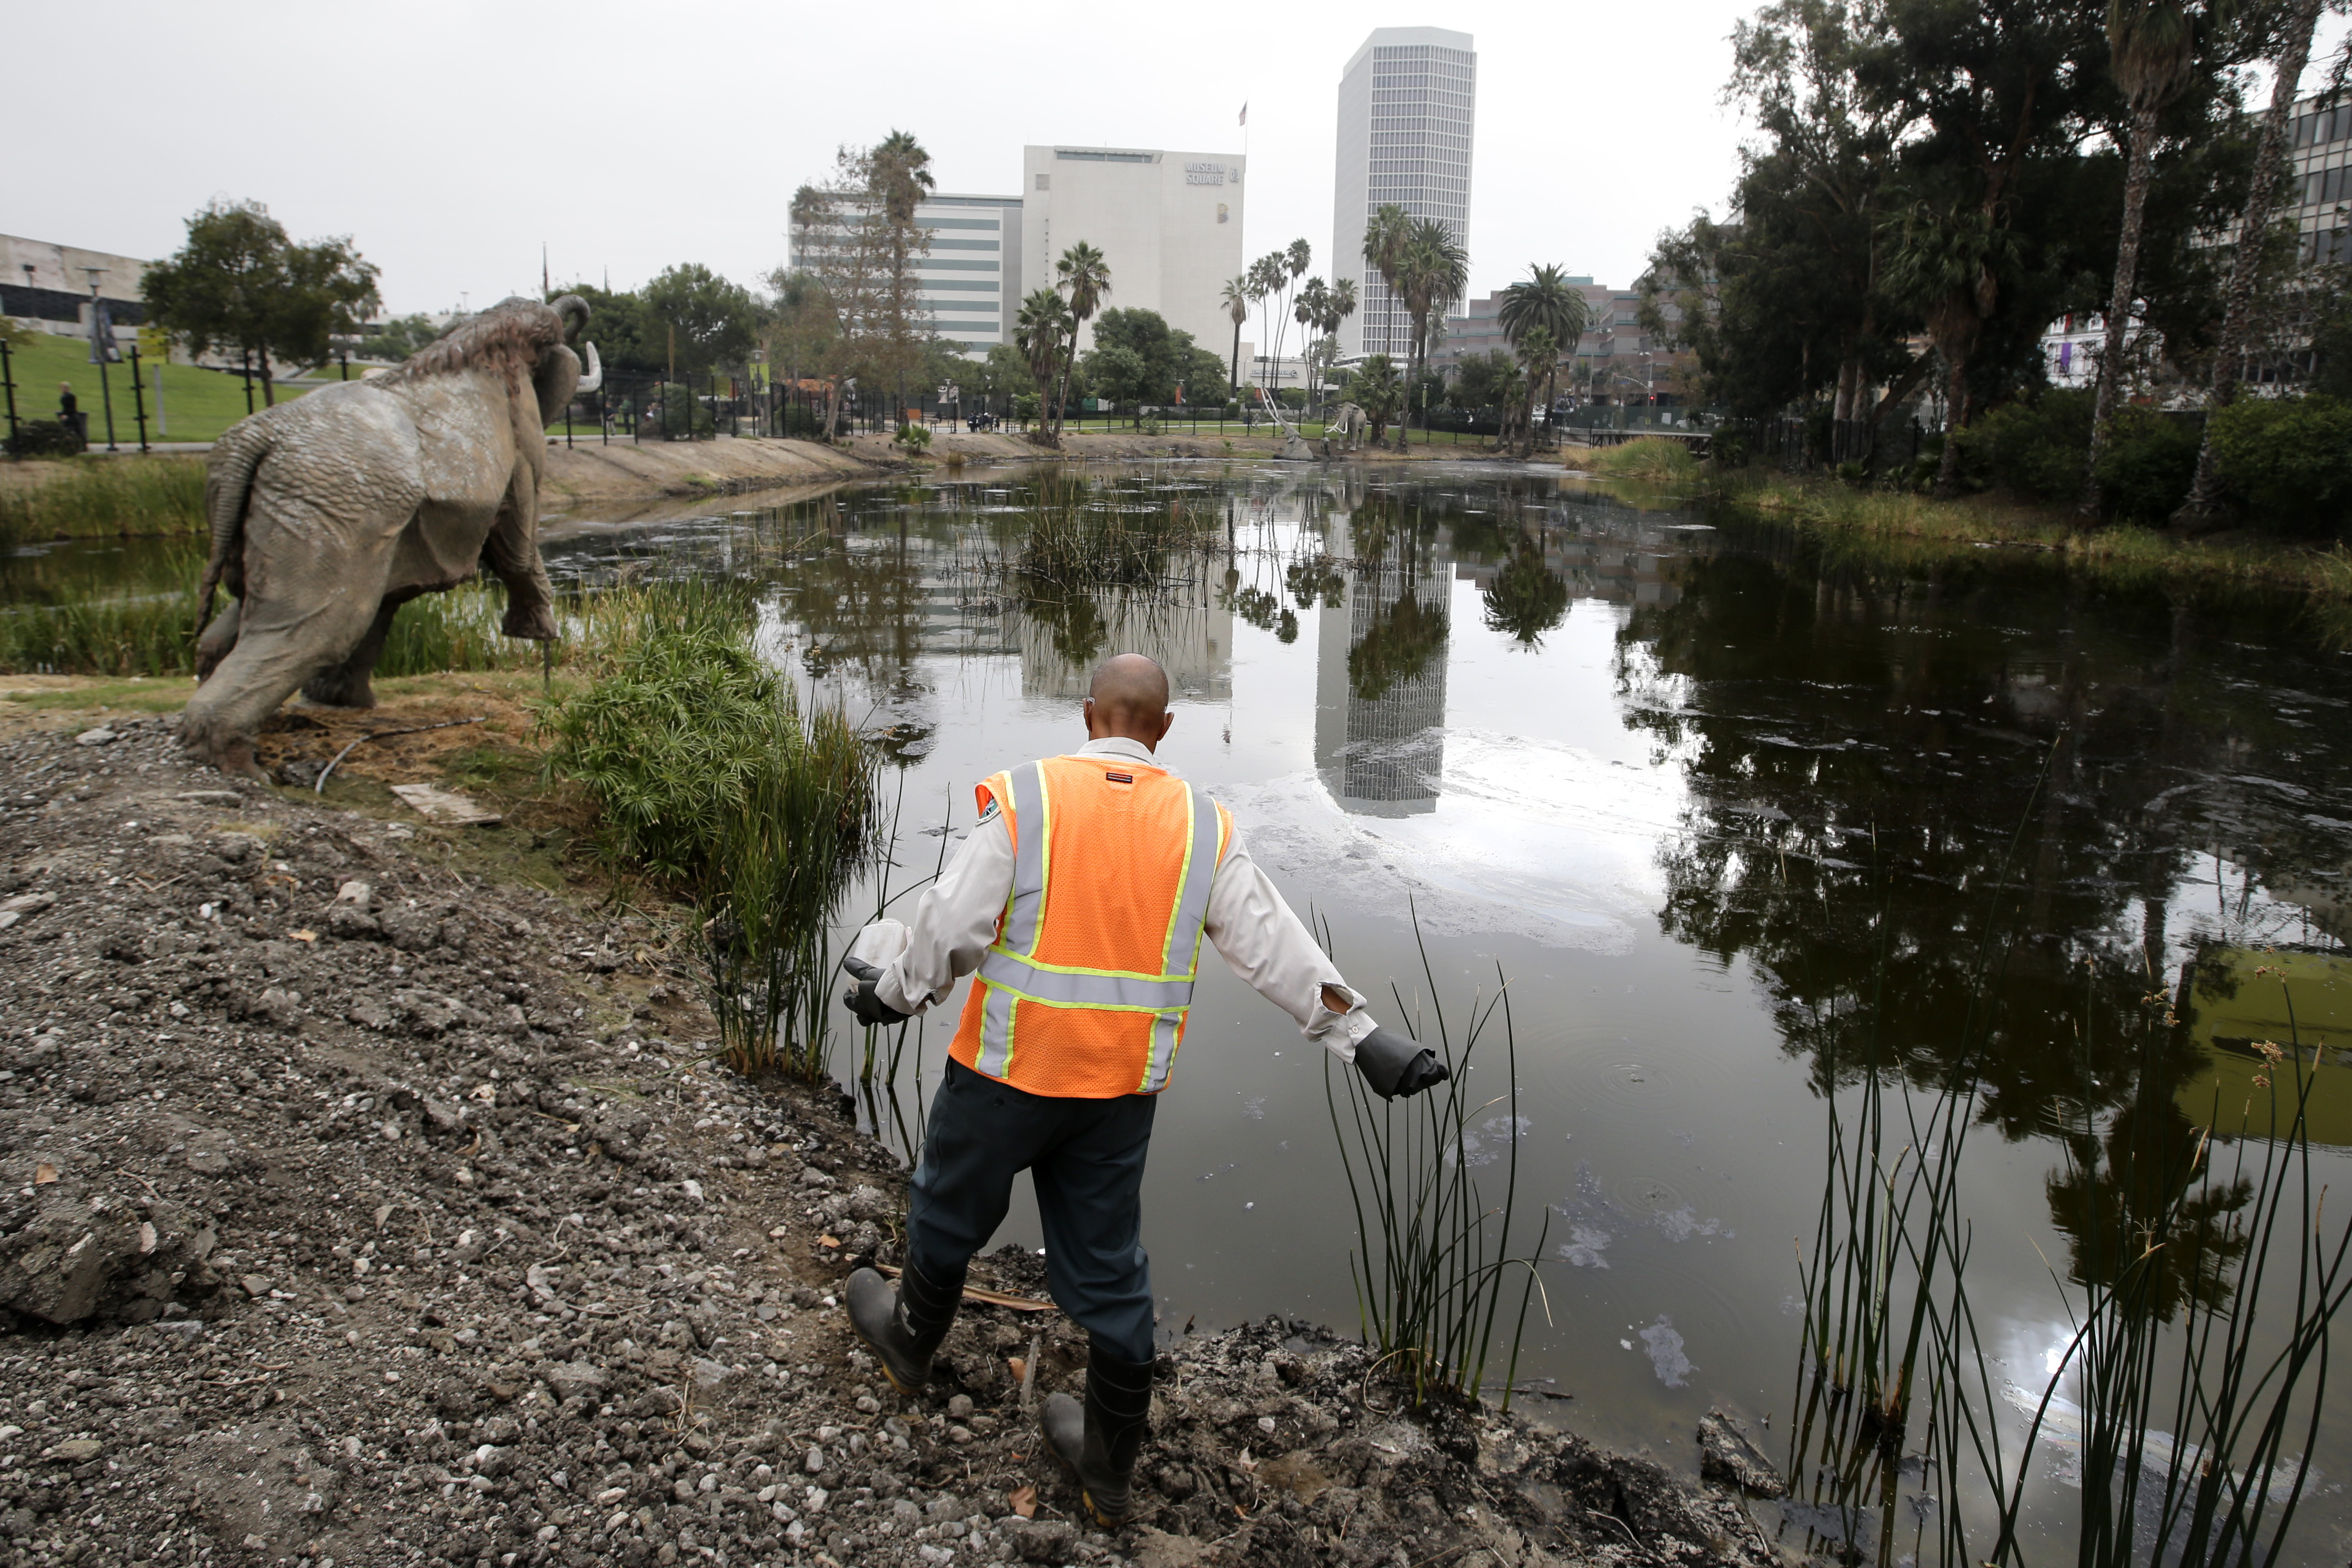 Scientists dig for fossils at the La Brea Tar Pits in L.A ...